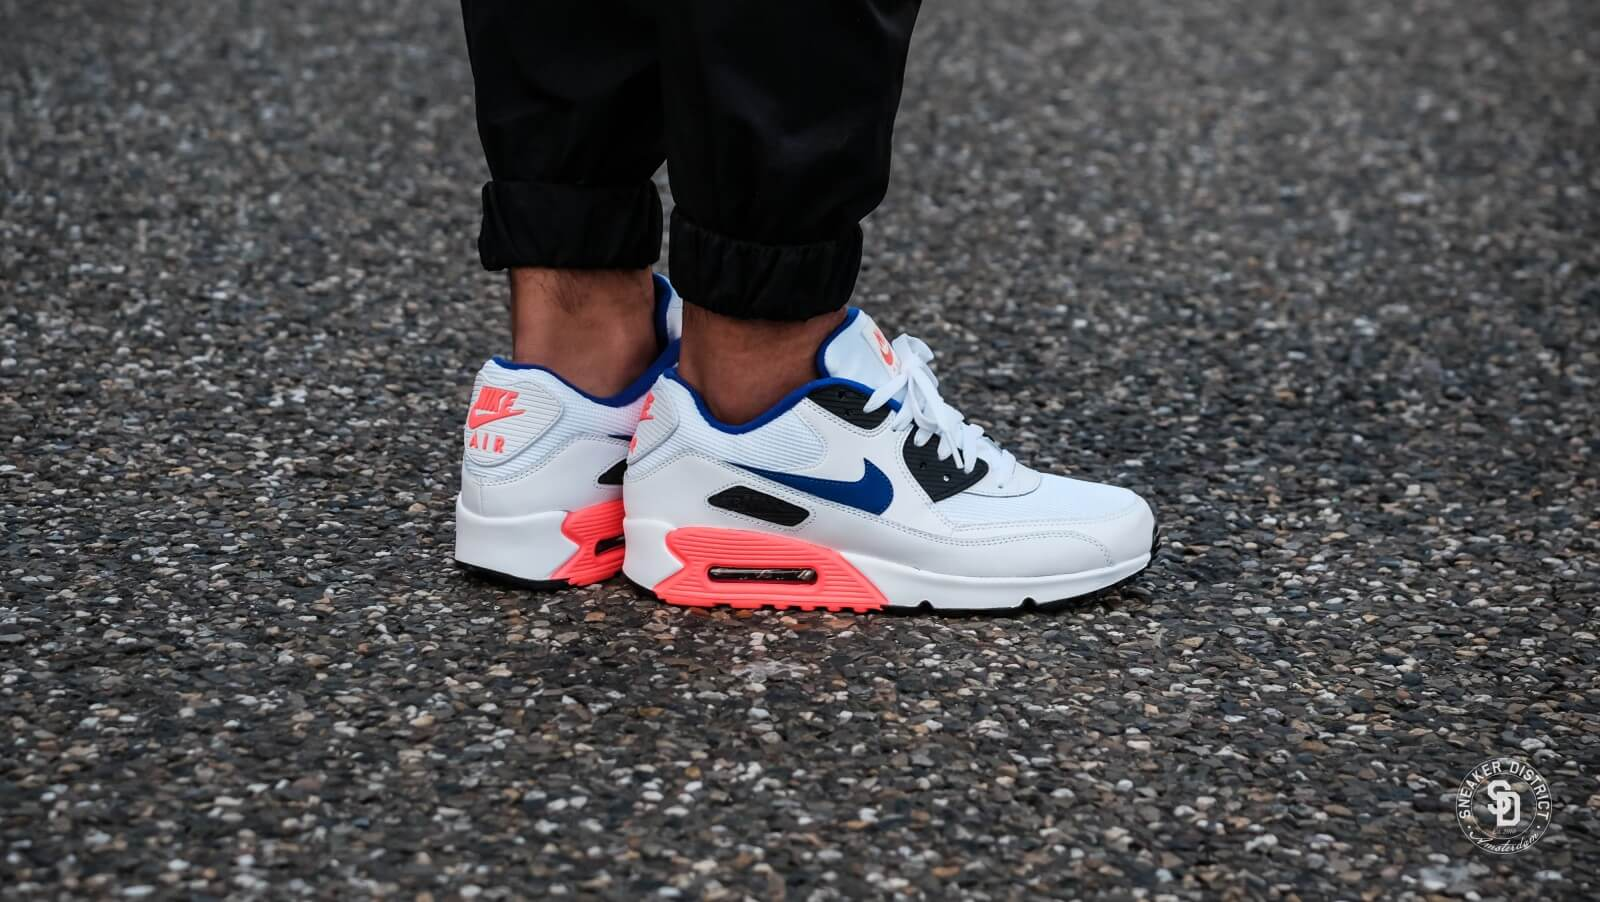 Nike Air Max 90 Essential White Ultramarine Solar Red